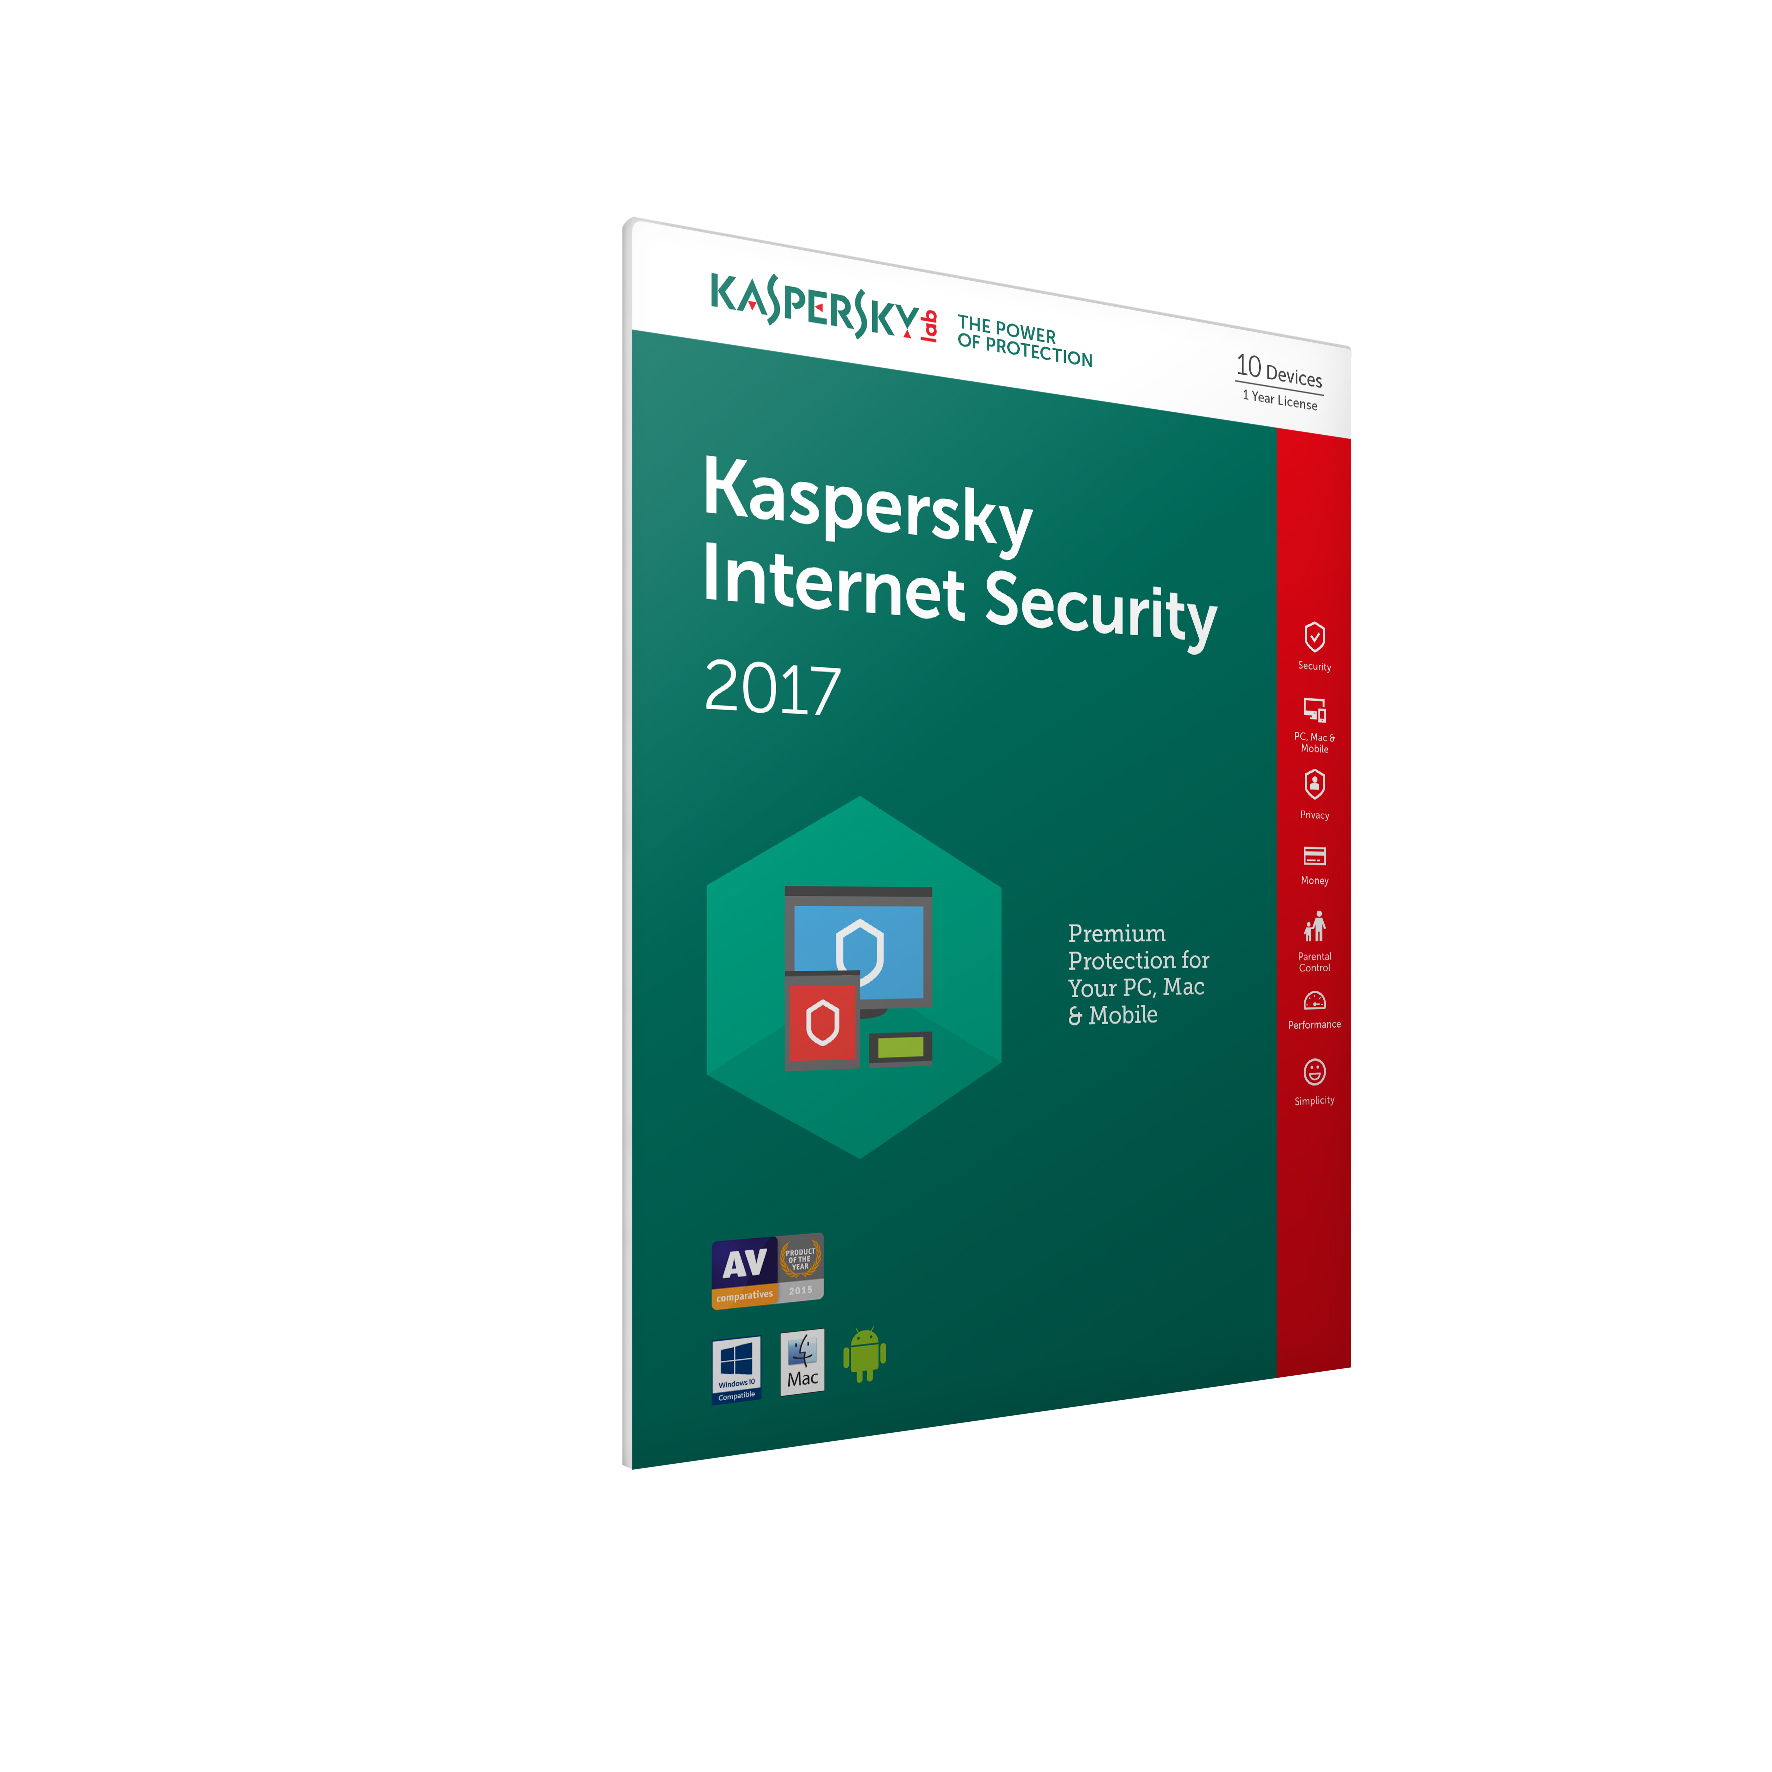 Kaspersky Lab Kaspersky Internet Security 2017 - 10 Devices 1 Year (Frustration Free Packaging)